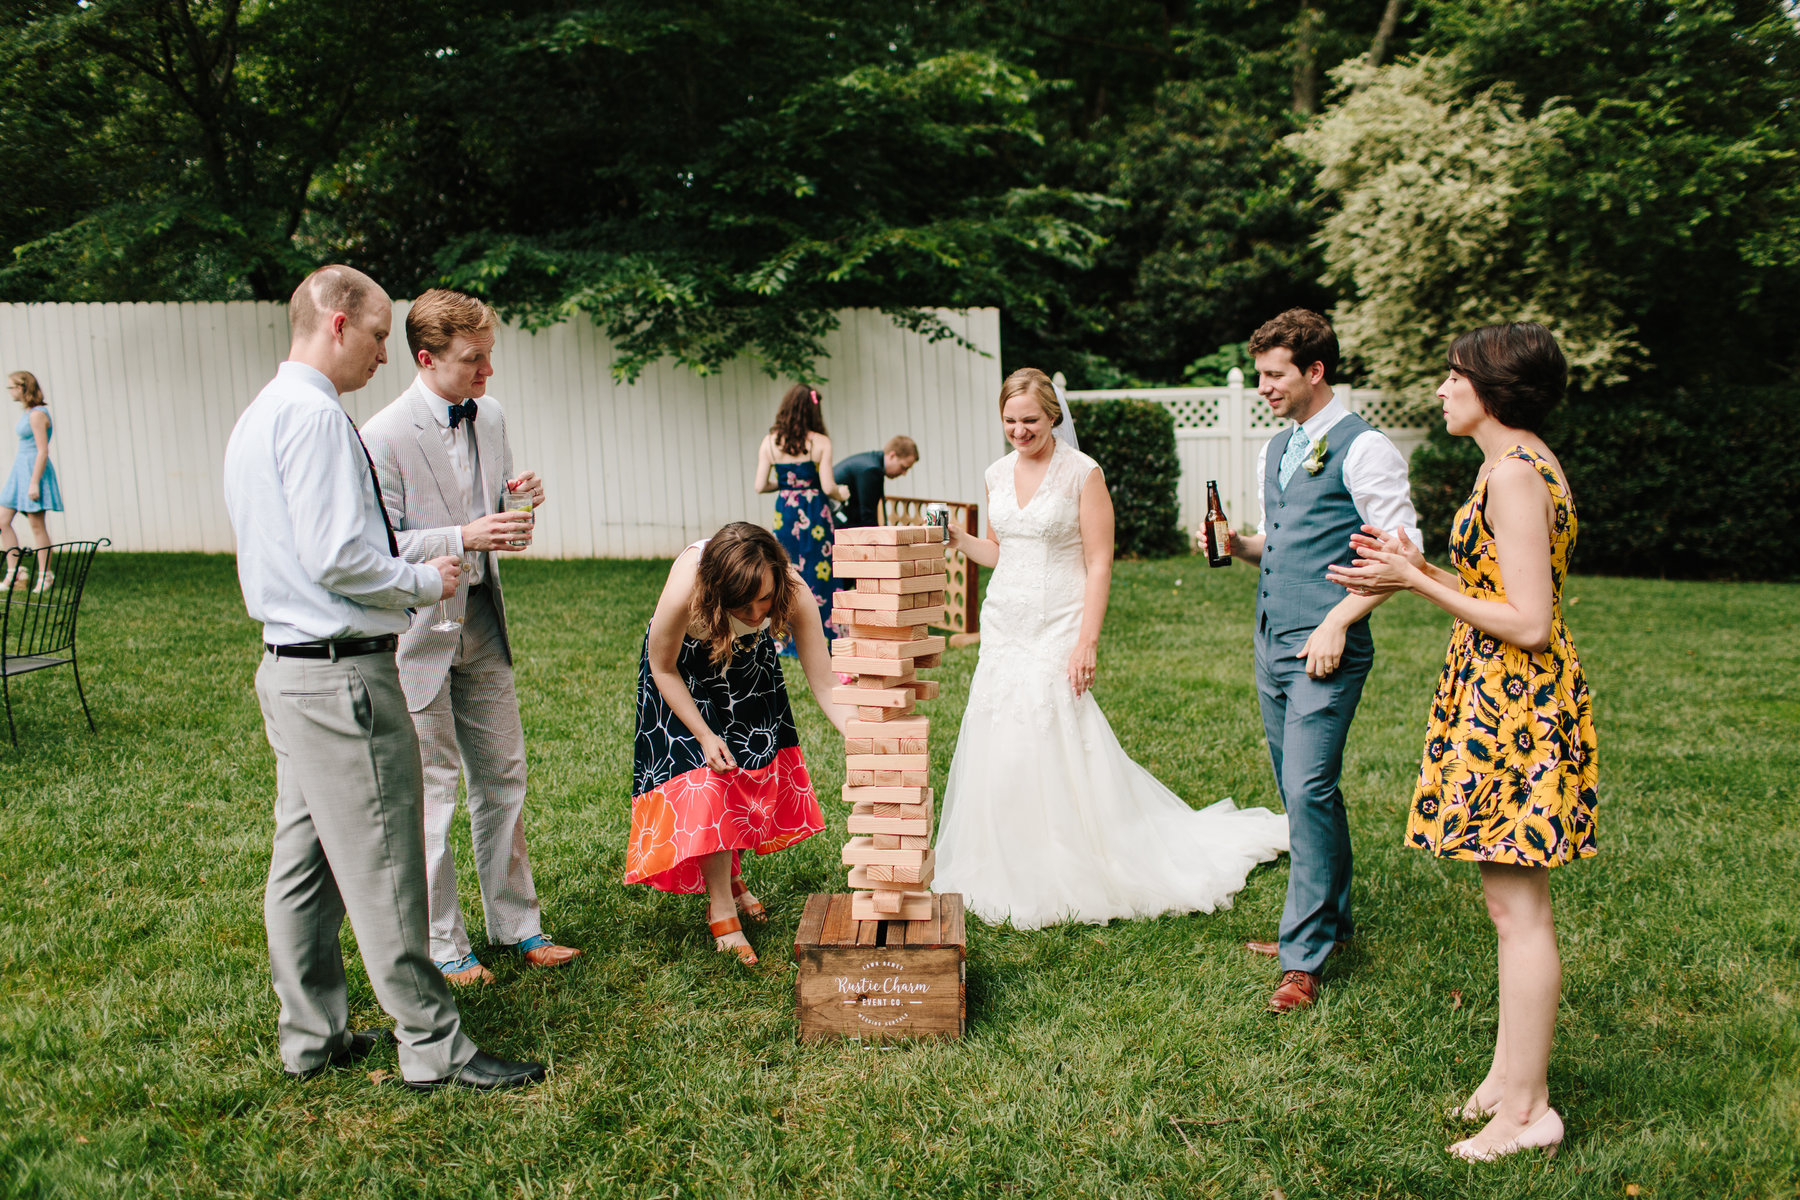 Jenga, flip cups, and the shoe up trivia games are all classics. But, can you think of any more killer wedding games to engage all guests?